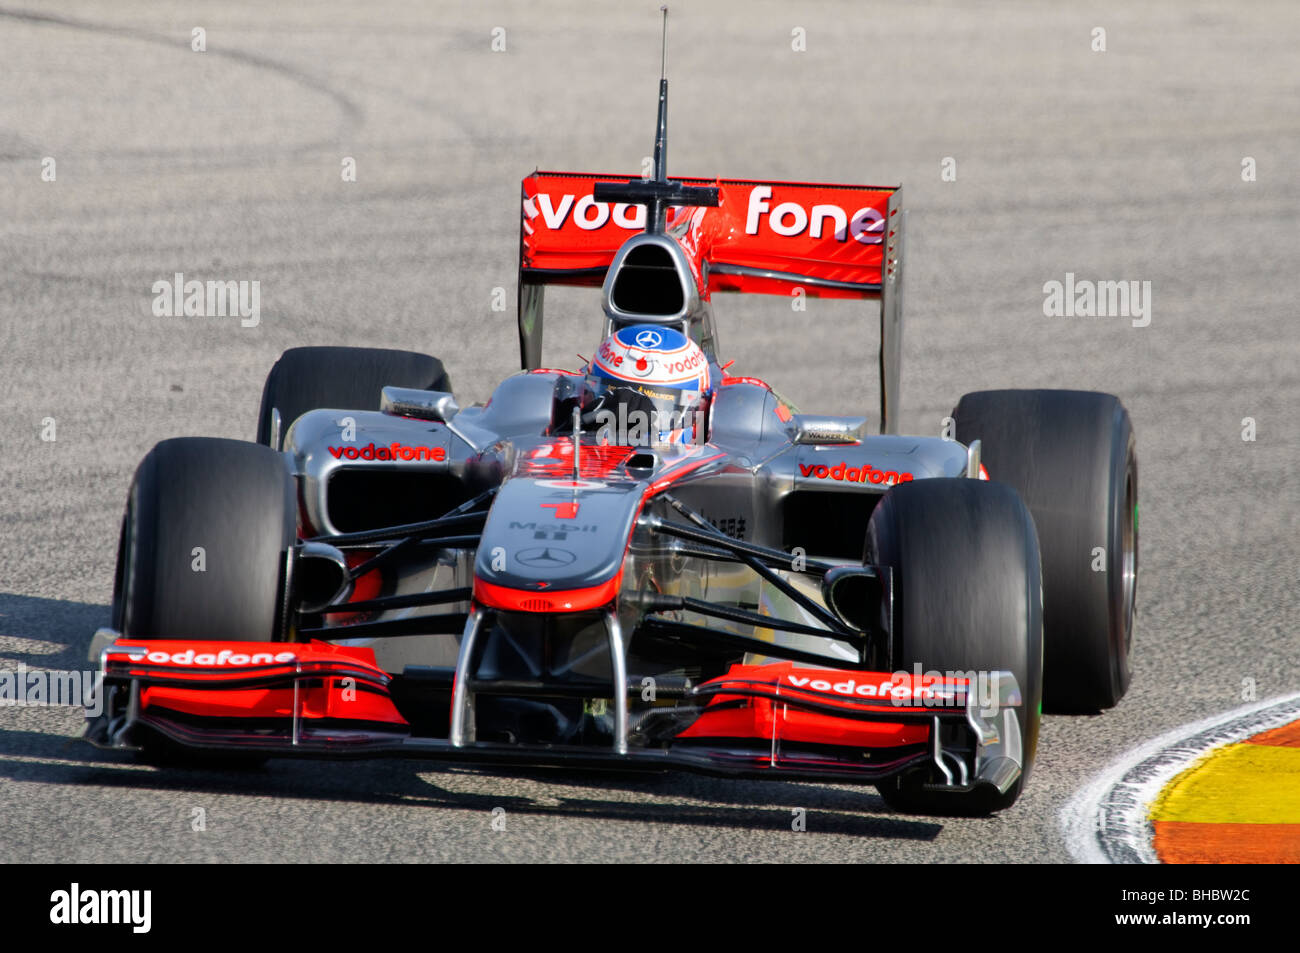 Jenson BUTTON (GB) drivng the  McLaren MP4-25 Formula One racing car in February 2010 - Stock Image